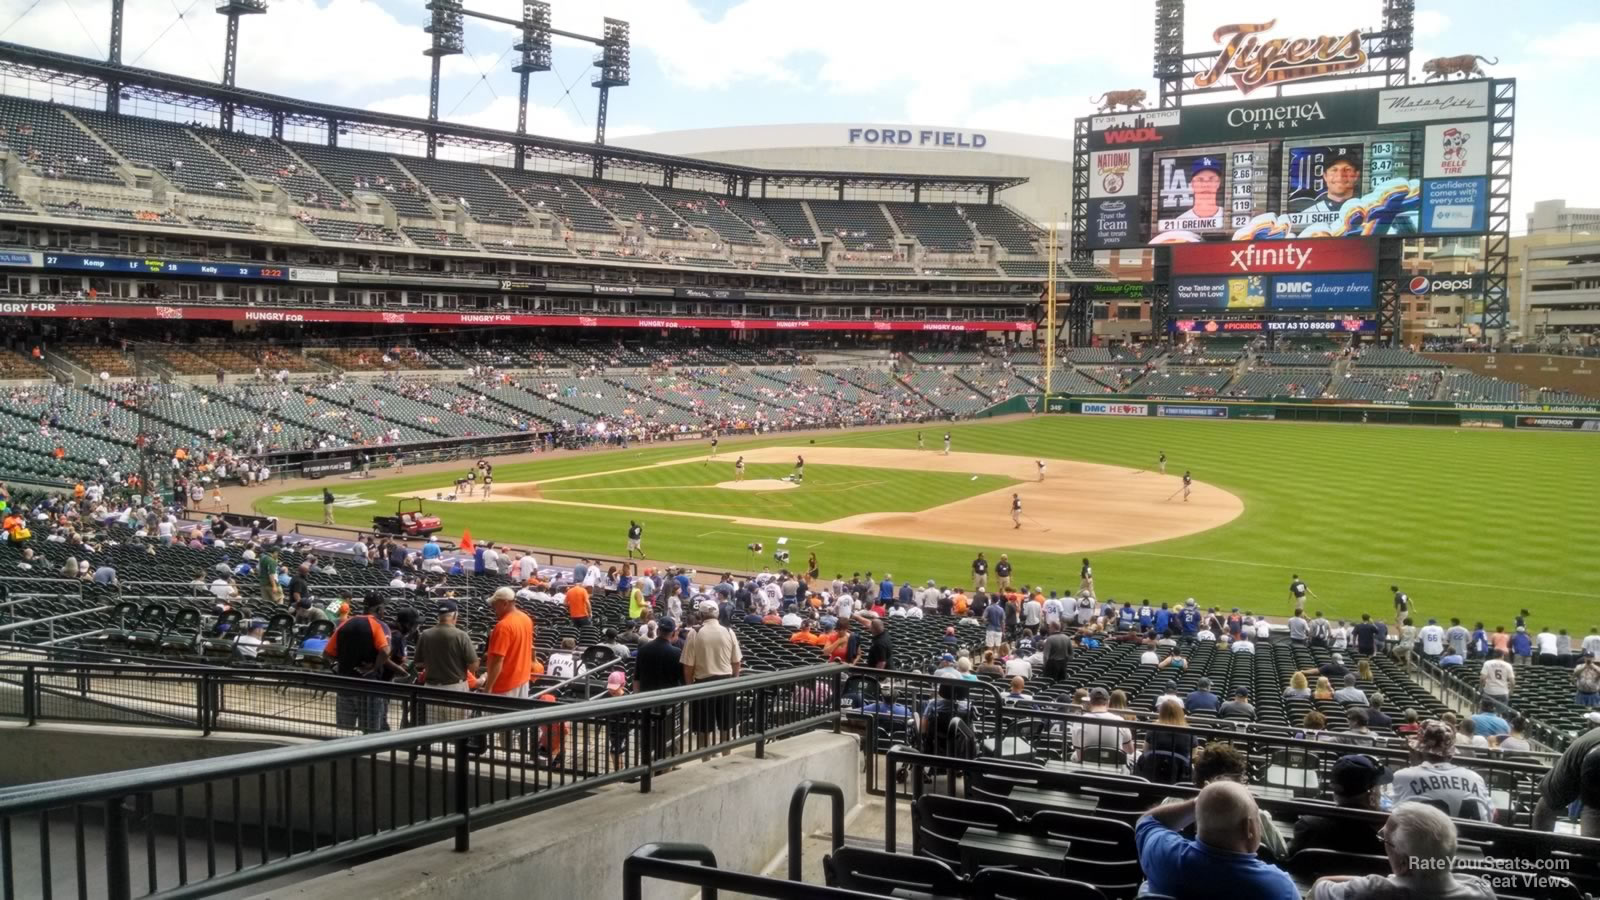 Comerica Field Seating Chart